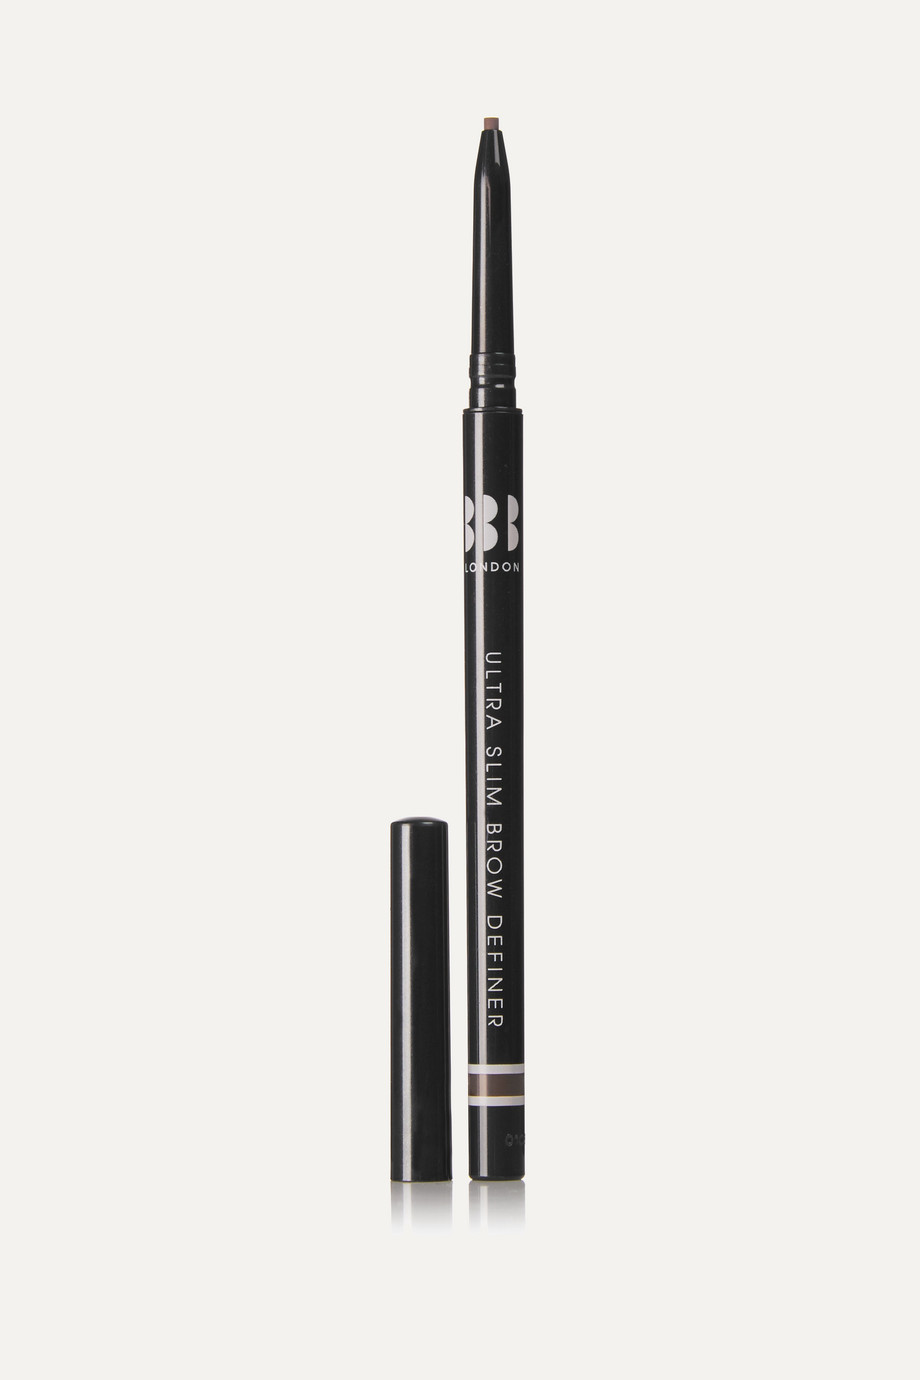 BBB LONDON Ultra Slim Brow Definer - Cinnamon Spice